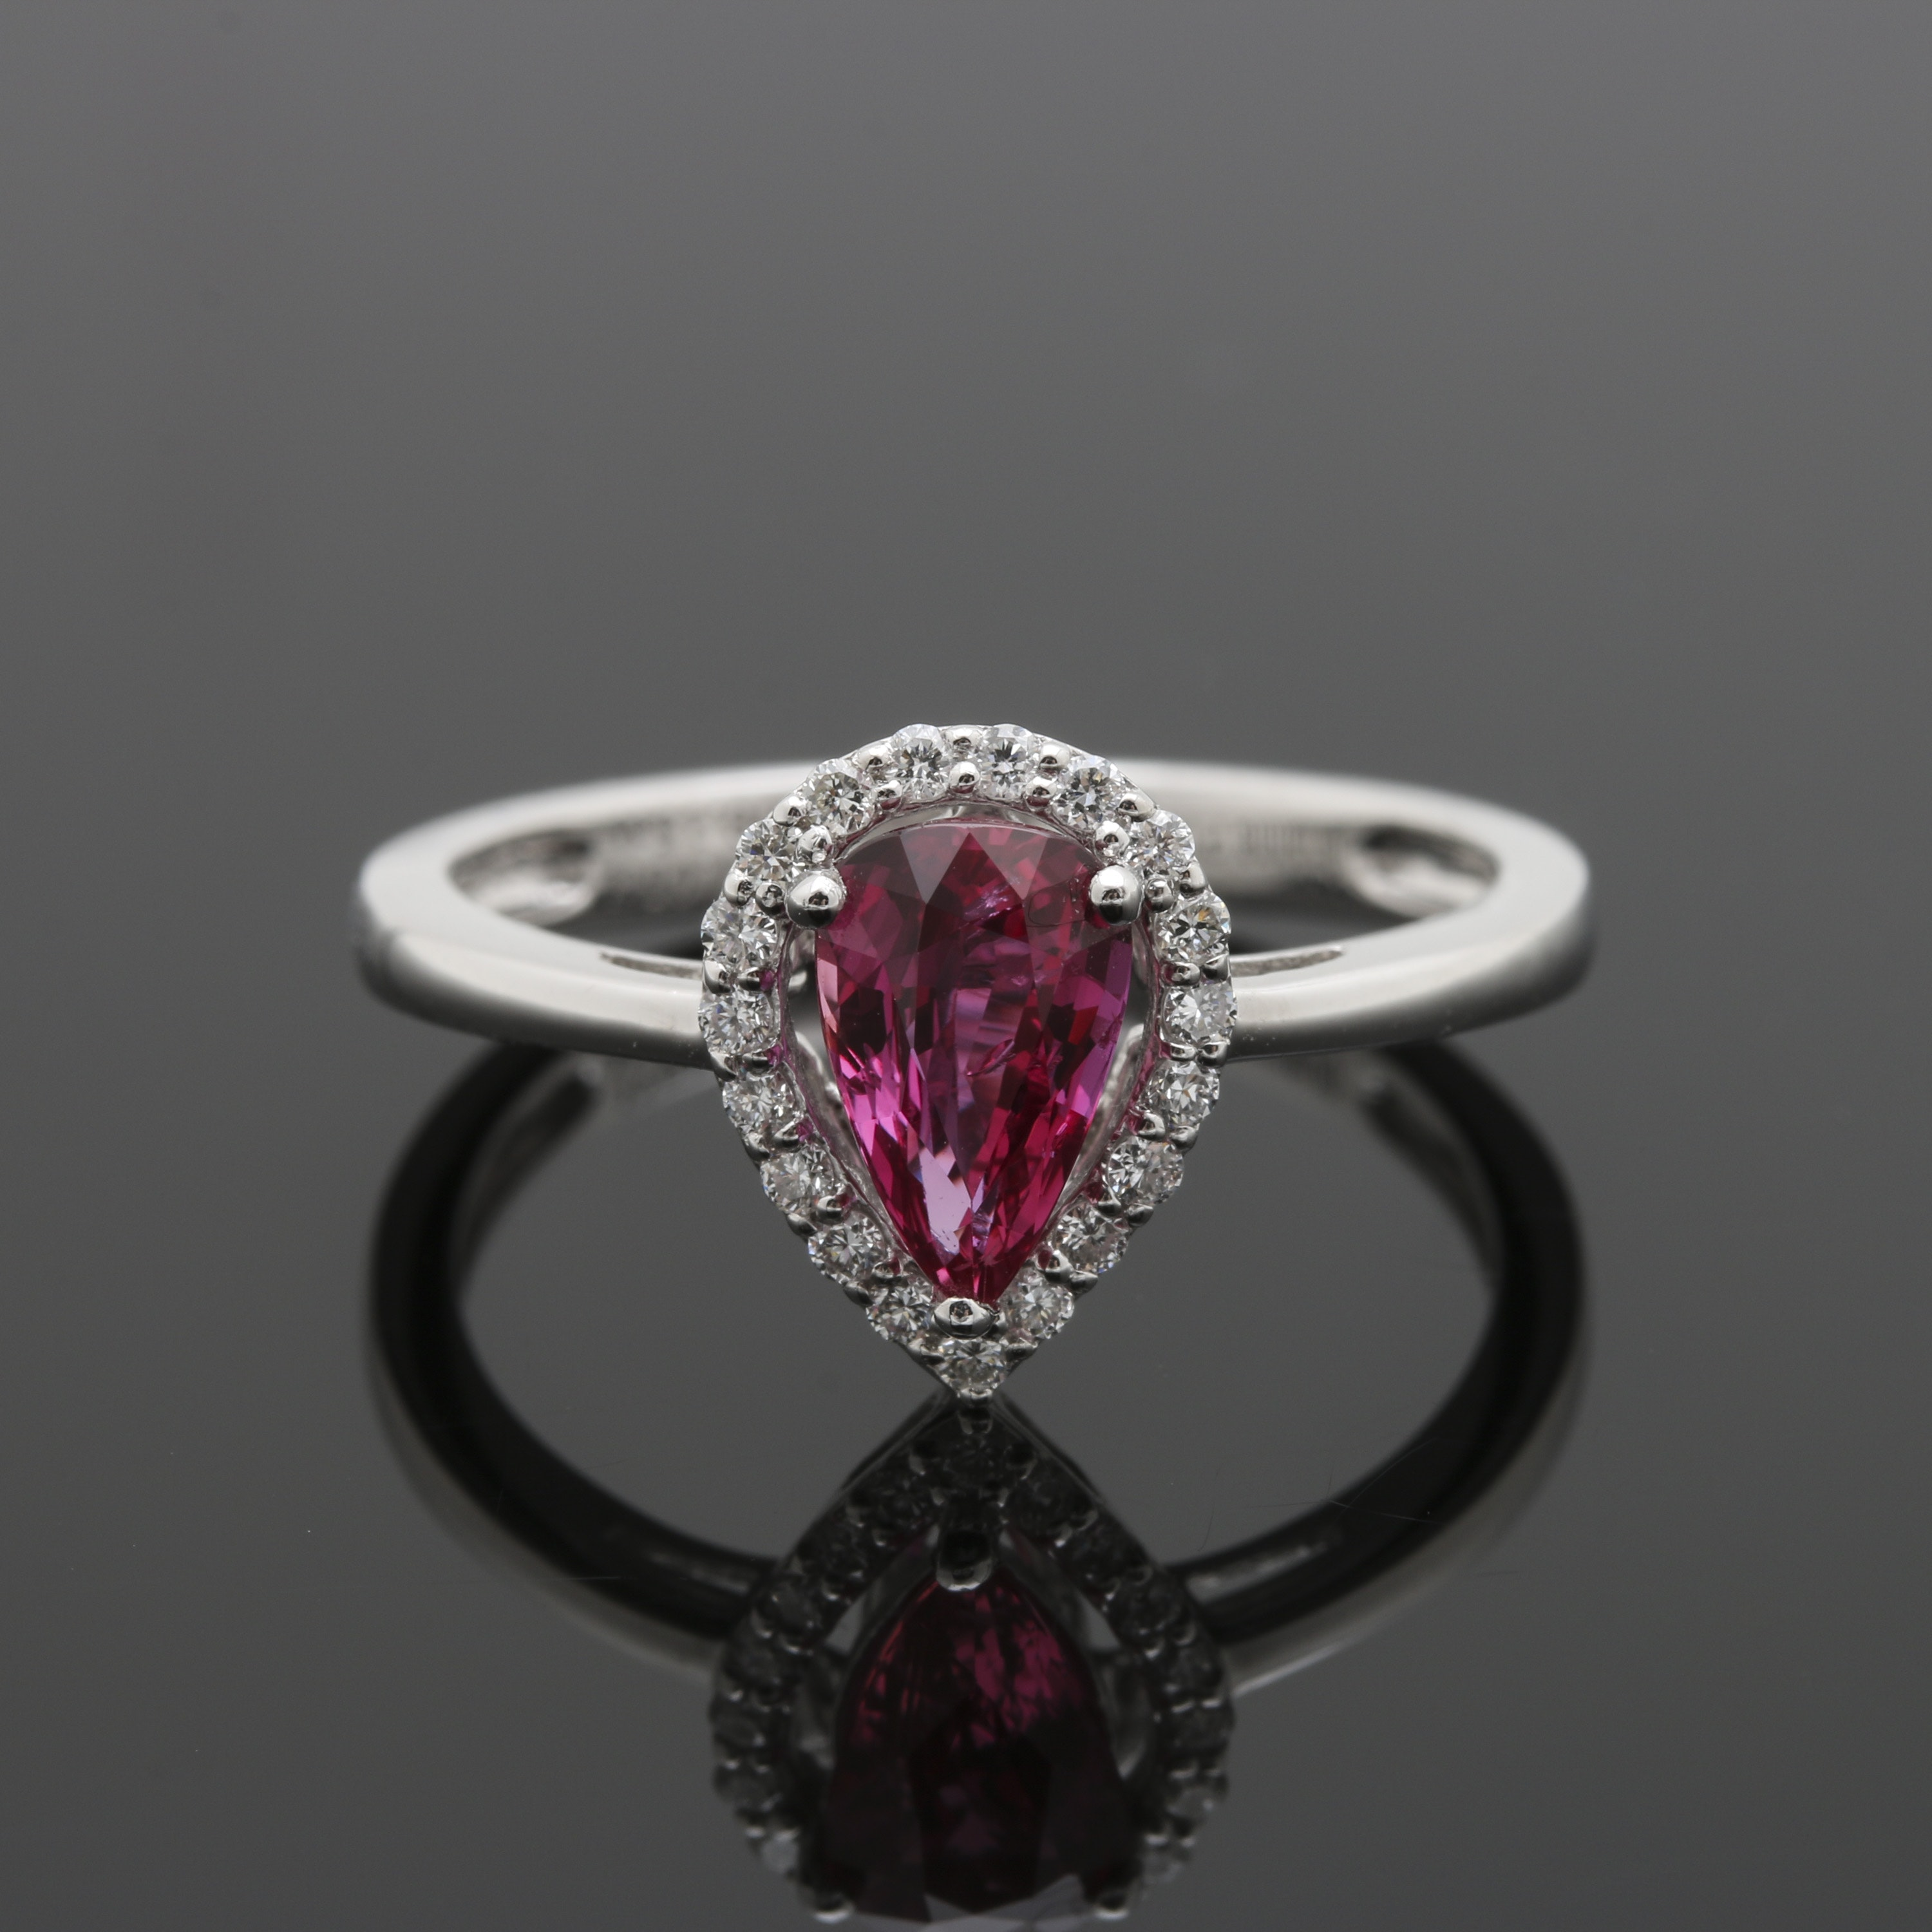 Platinum 1.05 CT Ruby and Diamond Ring With GIA Certificate